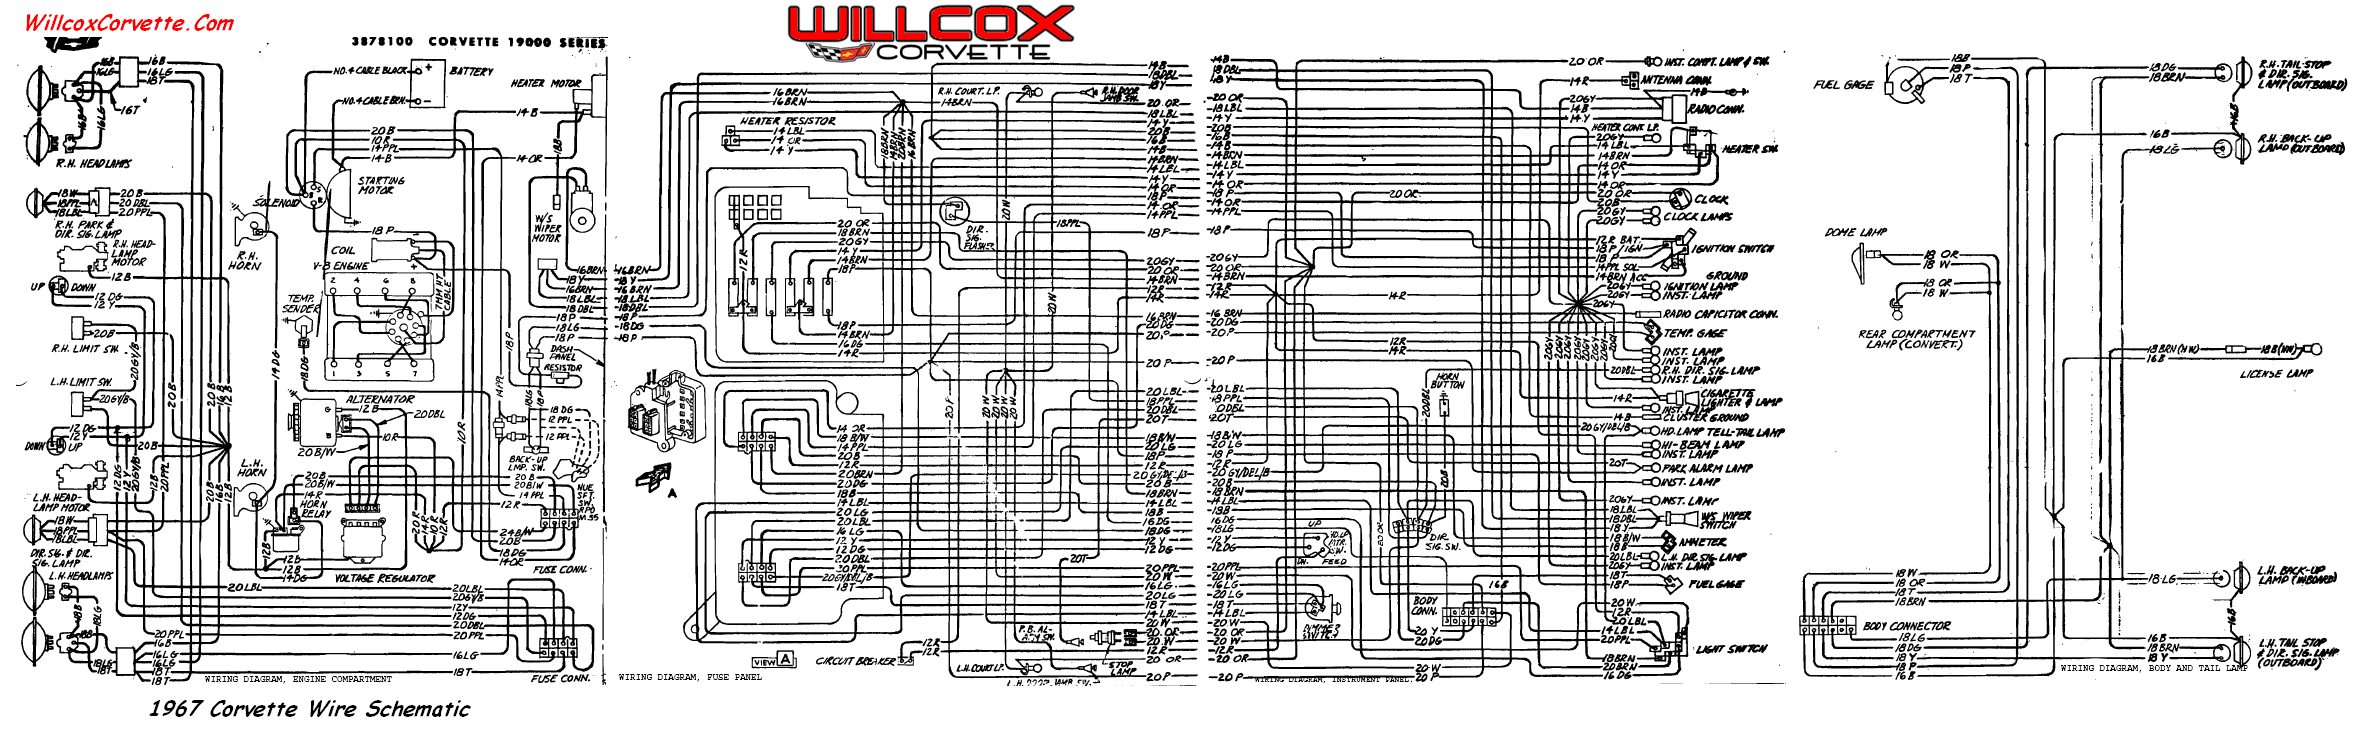 1968 Corvette Electrical Schematic - Block And Schematic Diagrams •